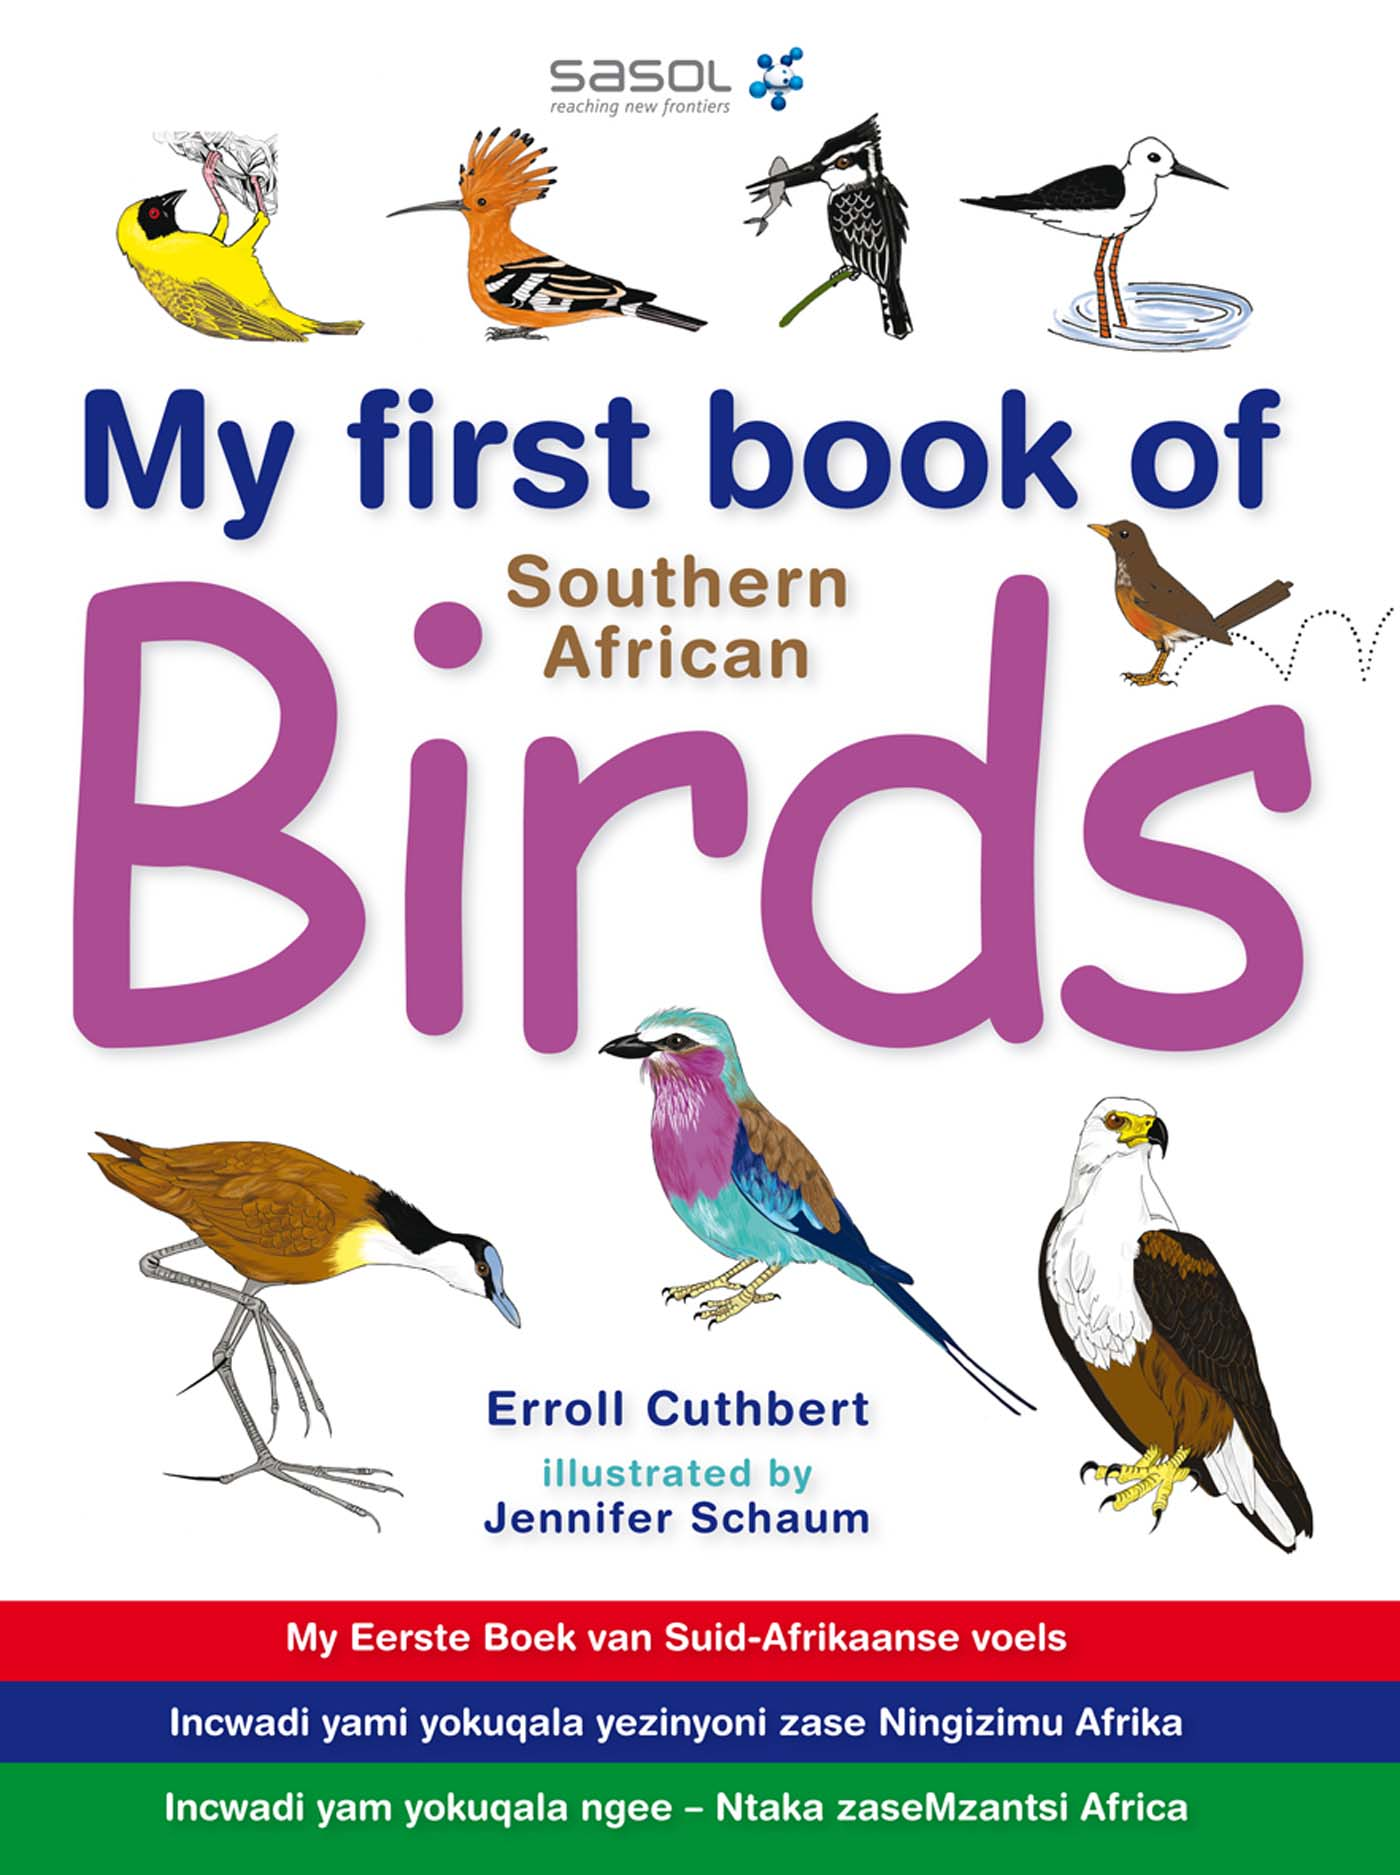 My first book of Southern African birds